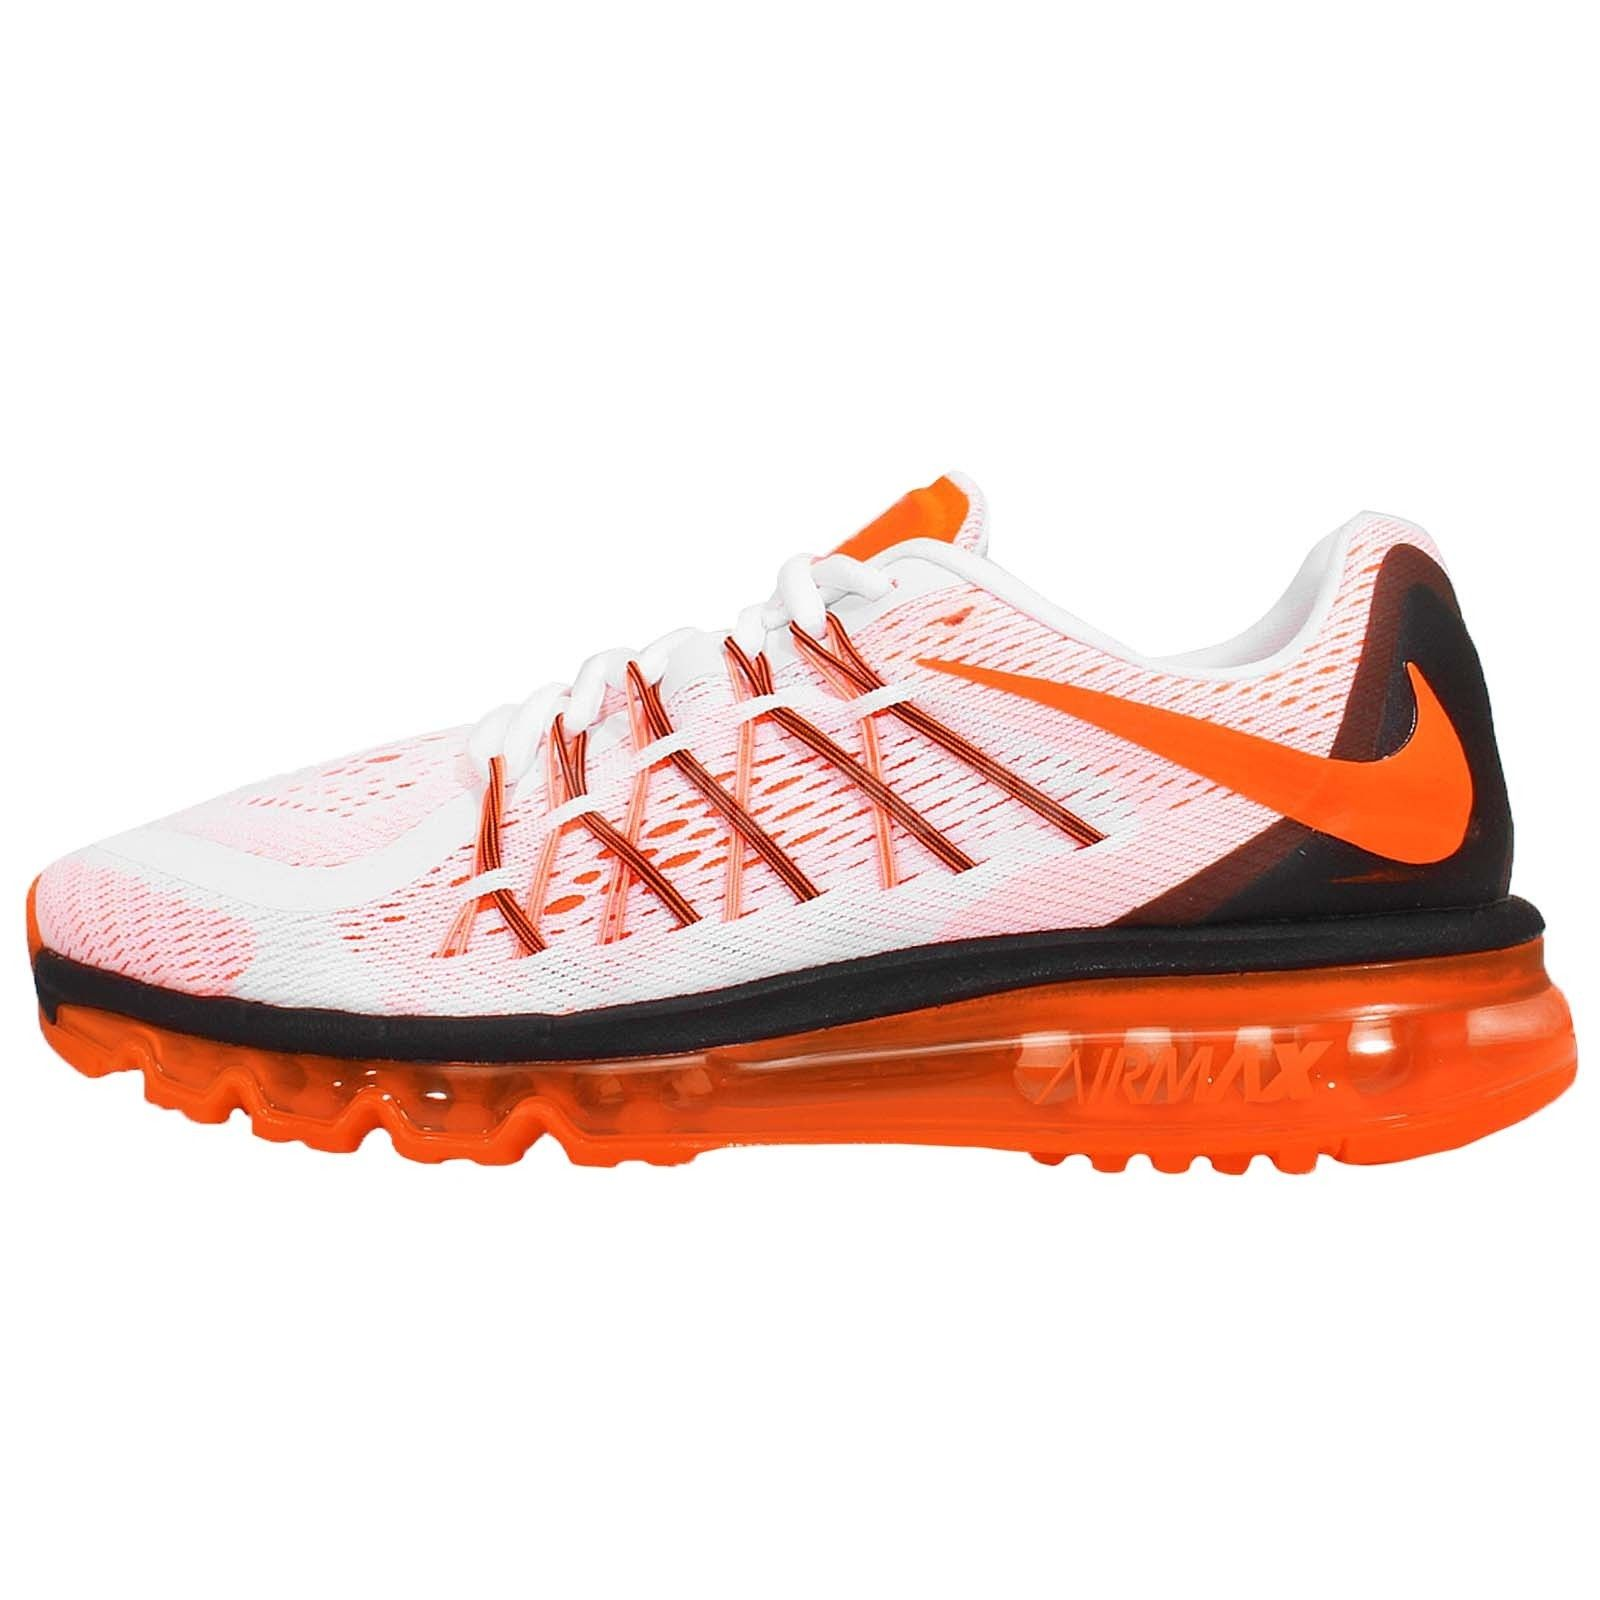 Nike Air Max 2015 Mens Running Shoes White Total Orange-Black 698902 ... 49cd93577cd2